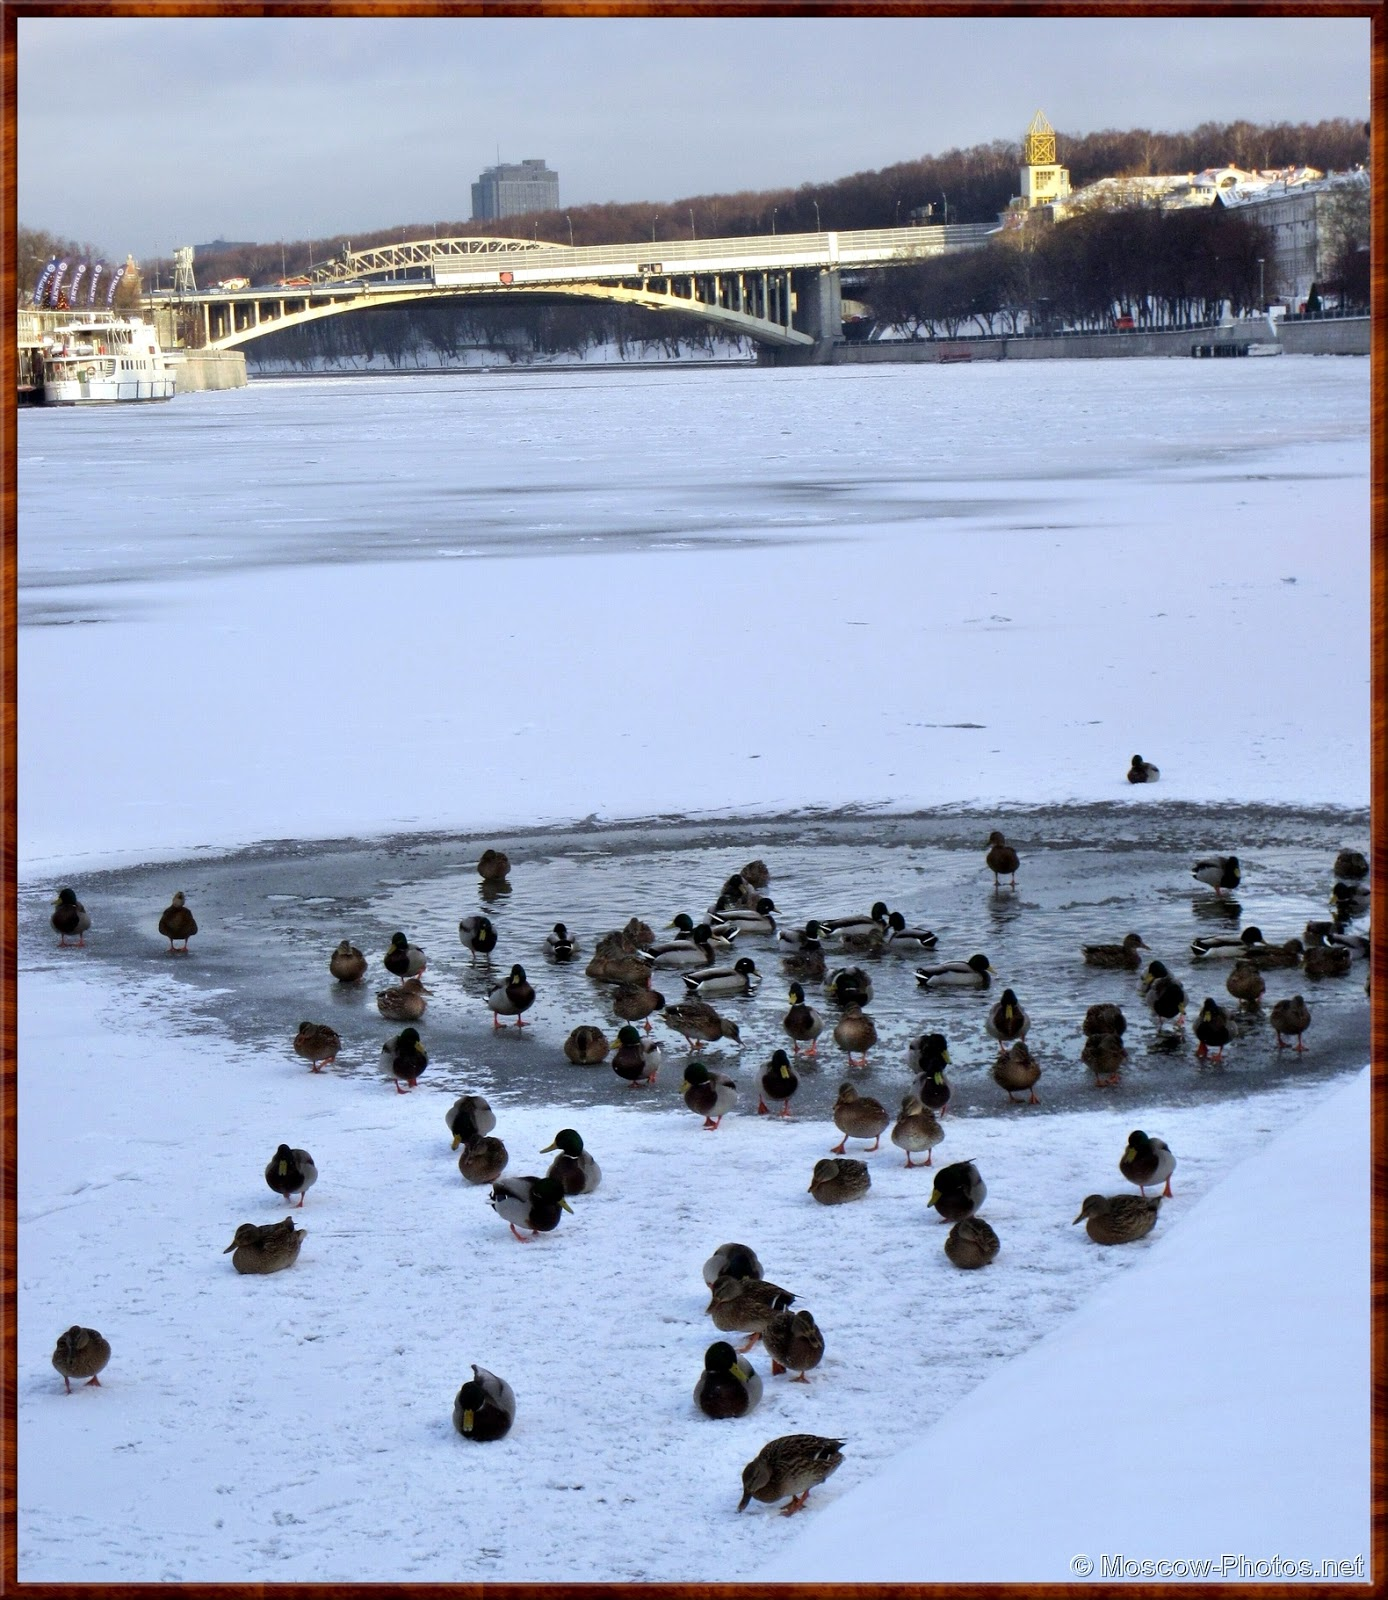 Moskva River and the Ducks